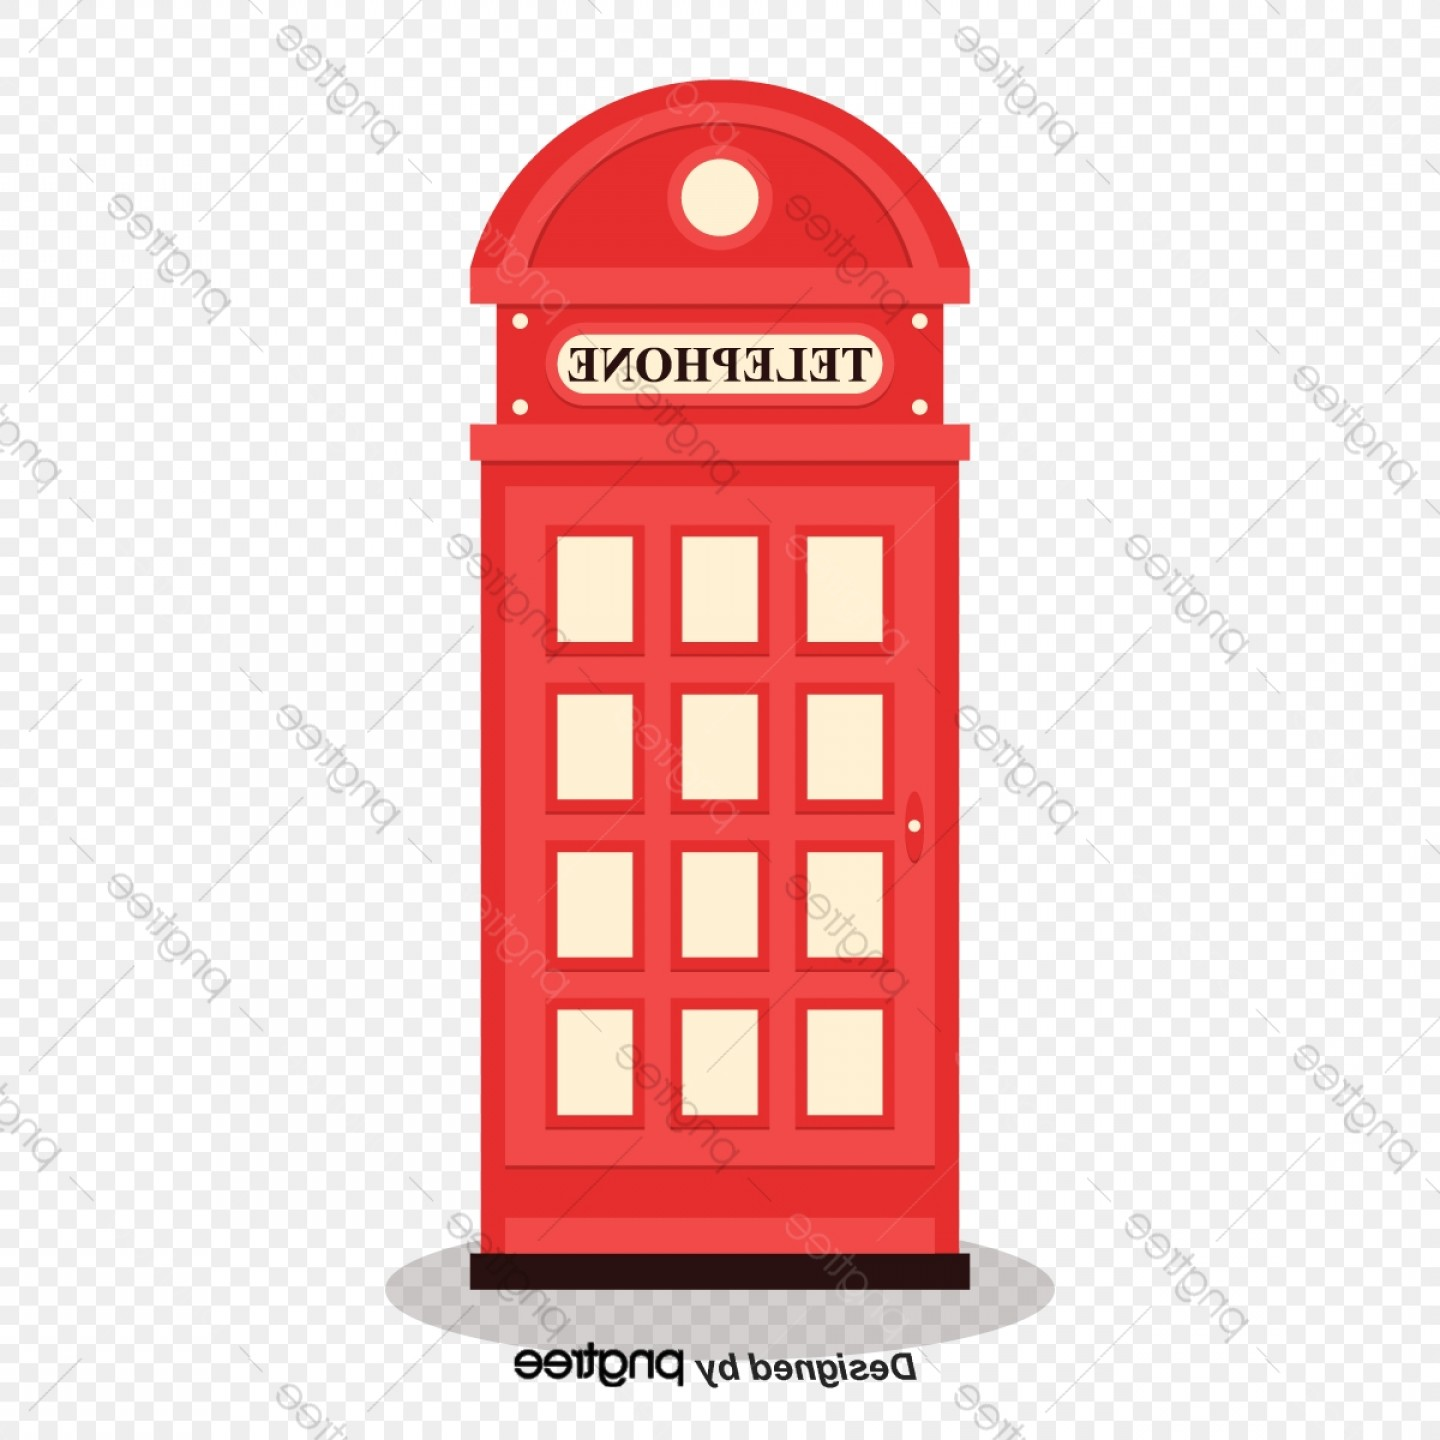 Commercial Booth Vector: Simple British Red Phone Booth Elements